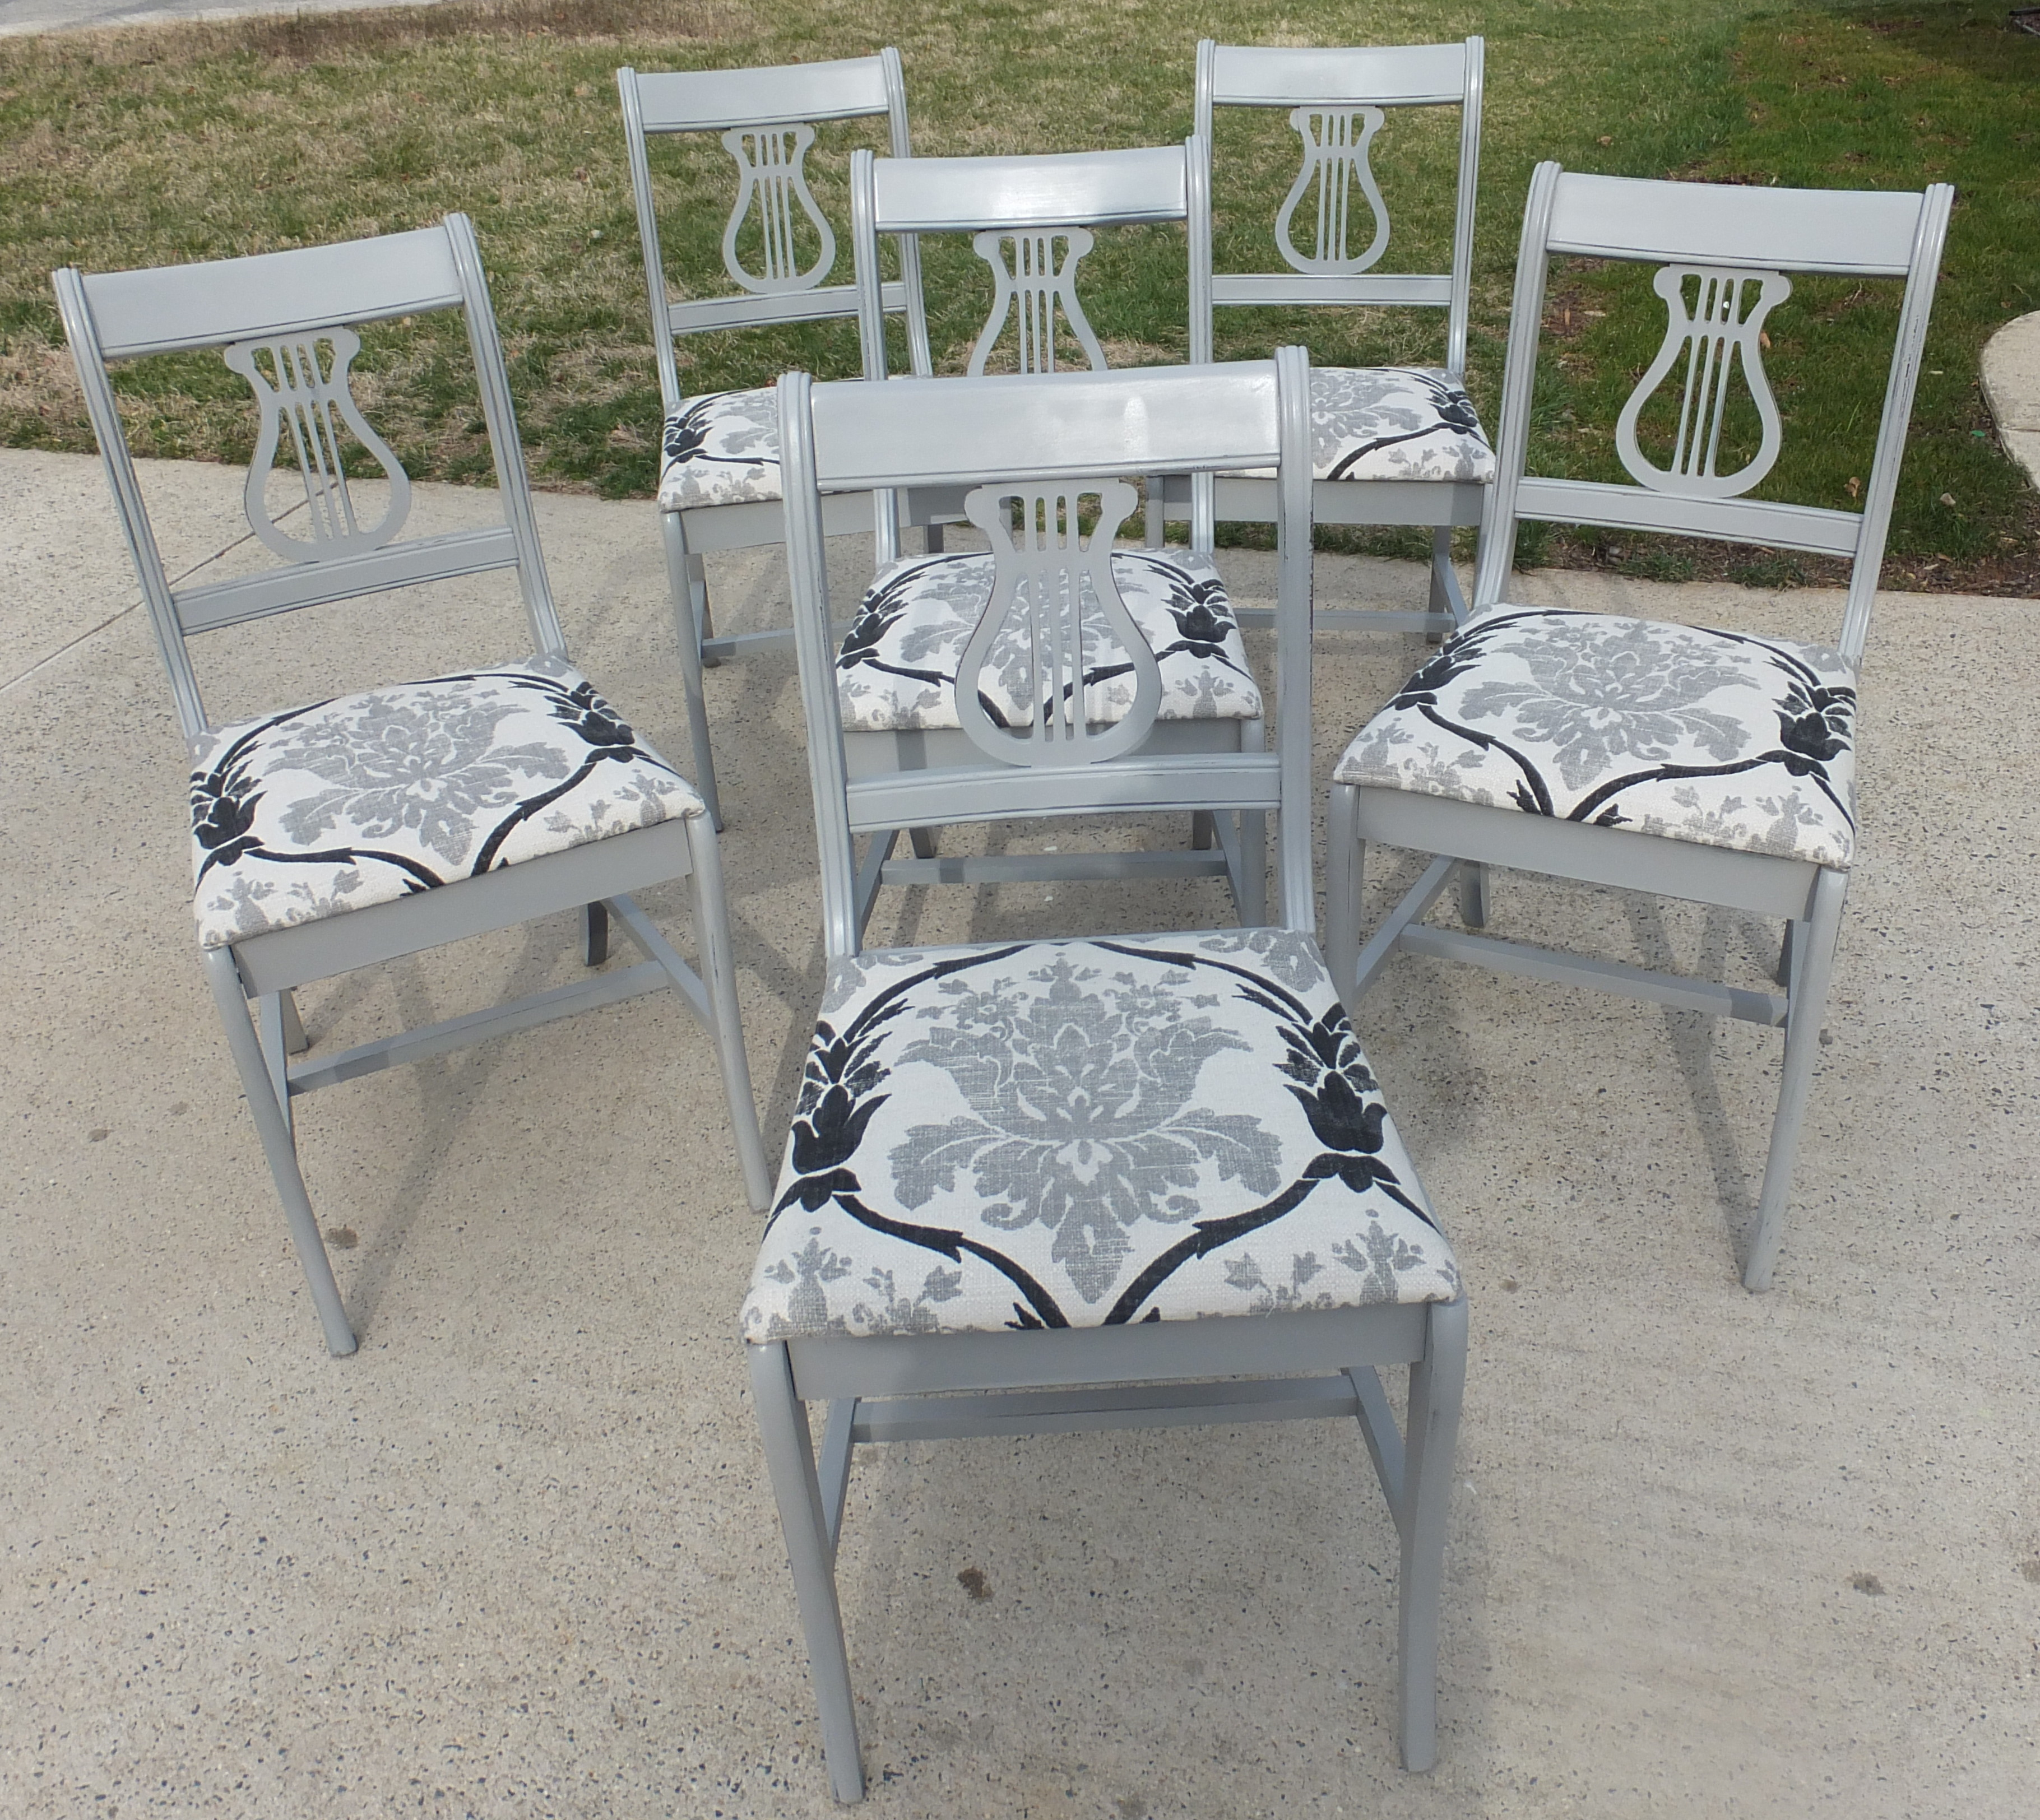 Antique duncan phyfe chairs - This Item Has Been Sold 6 Duncan Phyfe Chairs 07